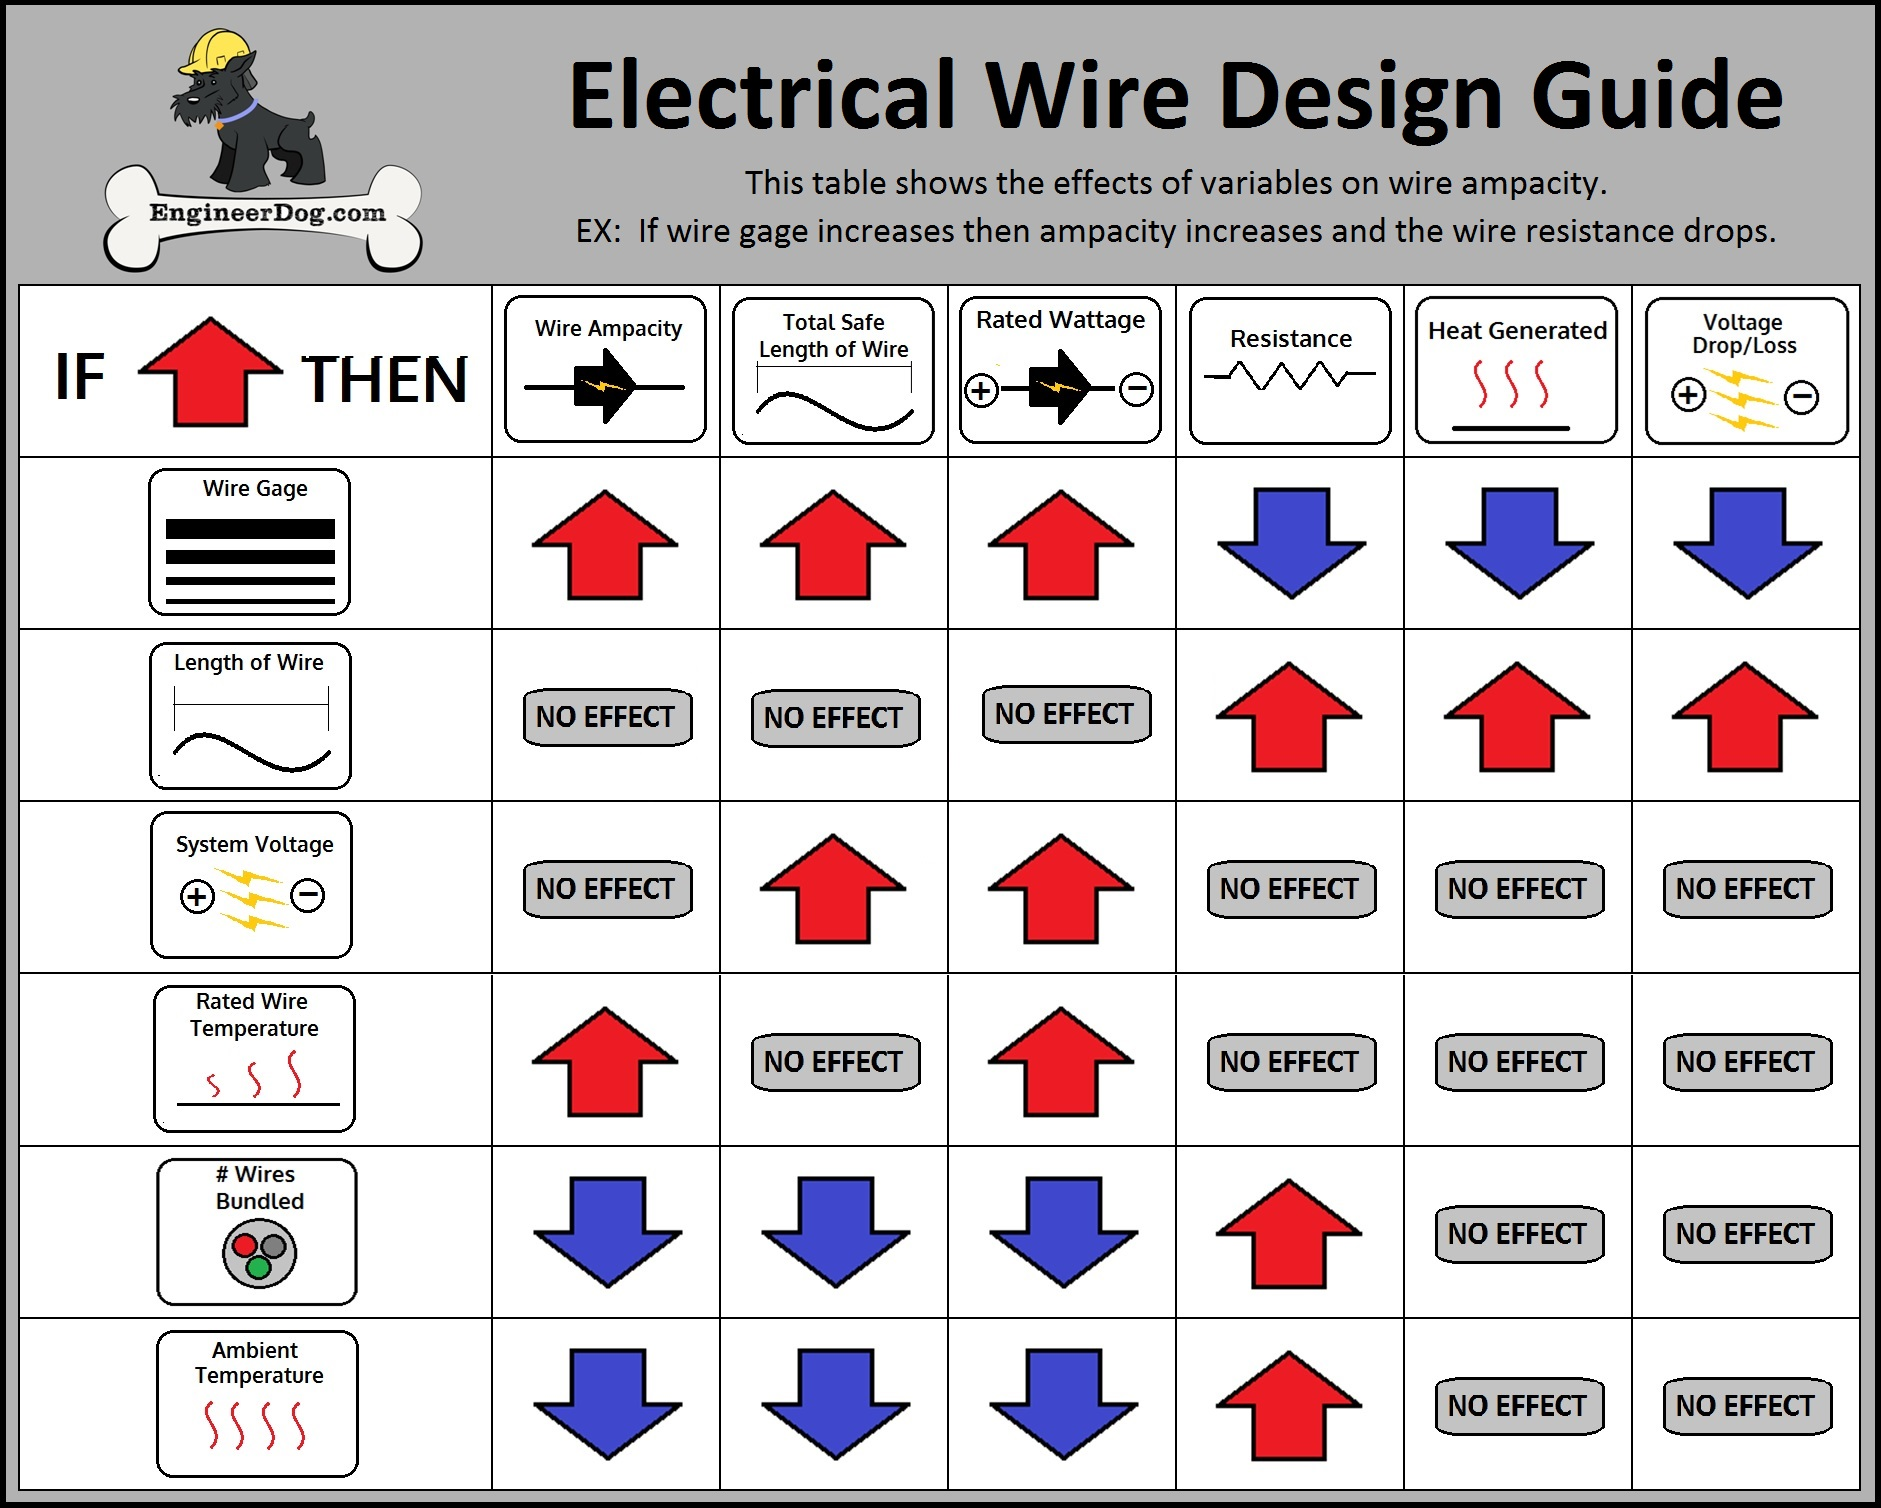 Electric wire gauge diameter wire center free electrical wire gauge sizing calculator engineerdog rh engineerdog com electrical wire size diameter chart electrical greentooth Image collections